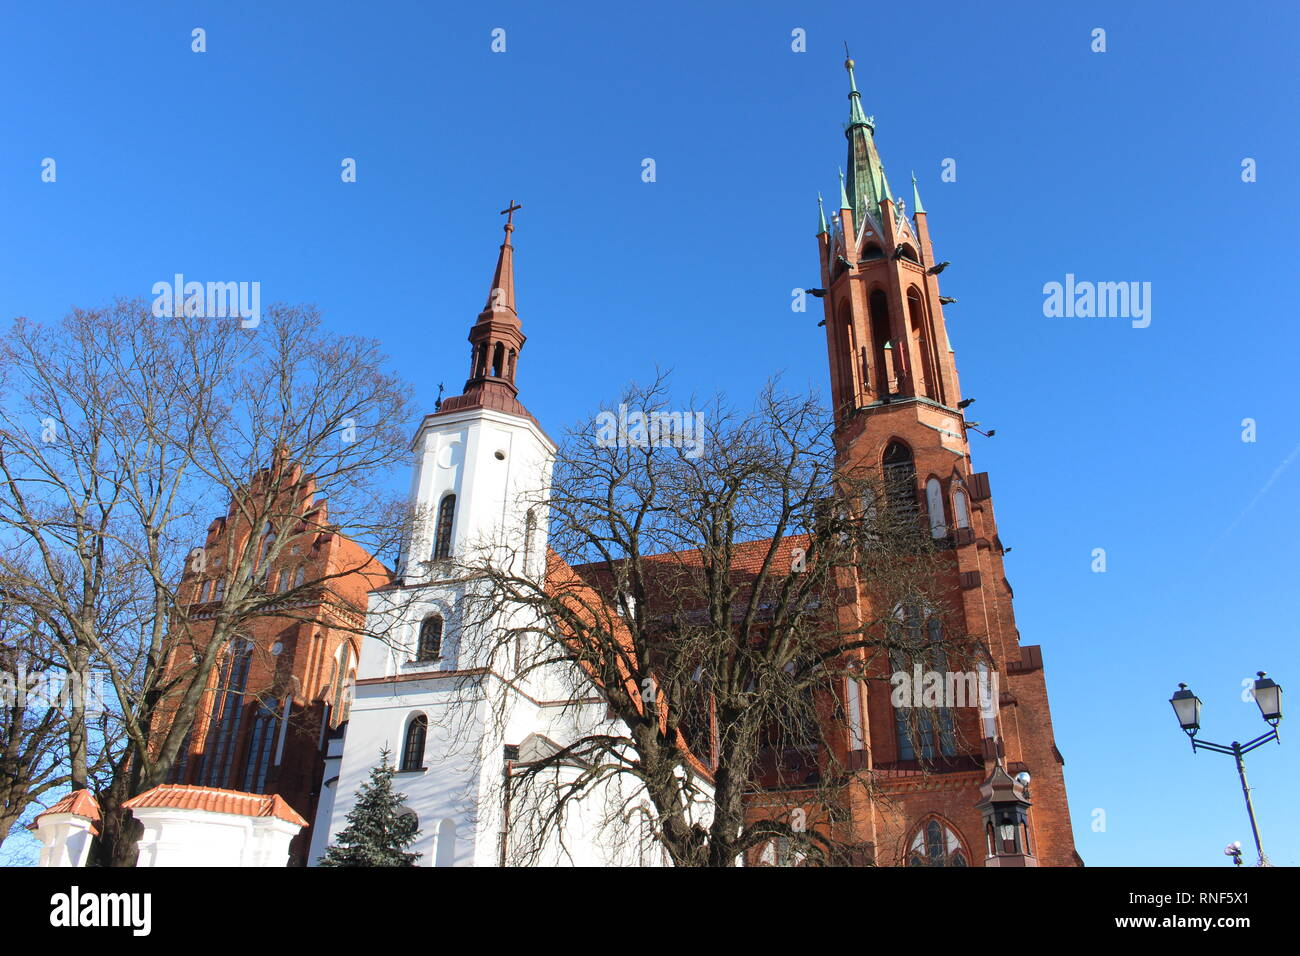 Cathedral Basilica of the Assumption of the Blessed Virgin Mary, Białystok, View from the city center Stock Photo